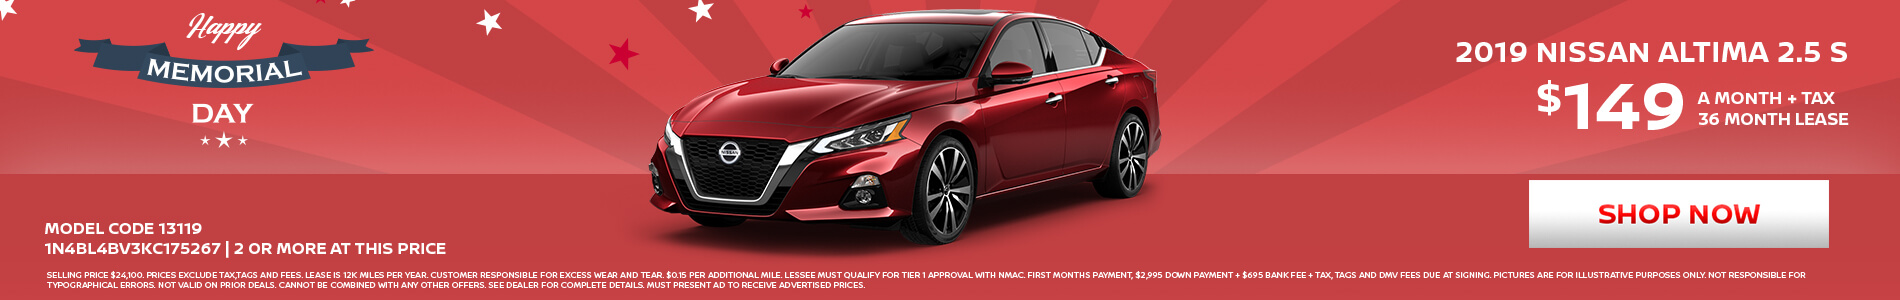 Nissan Altima $149 Lease